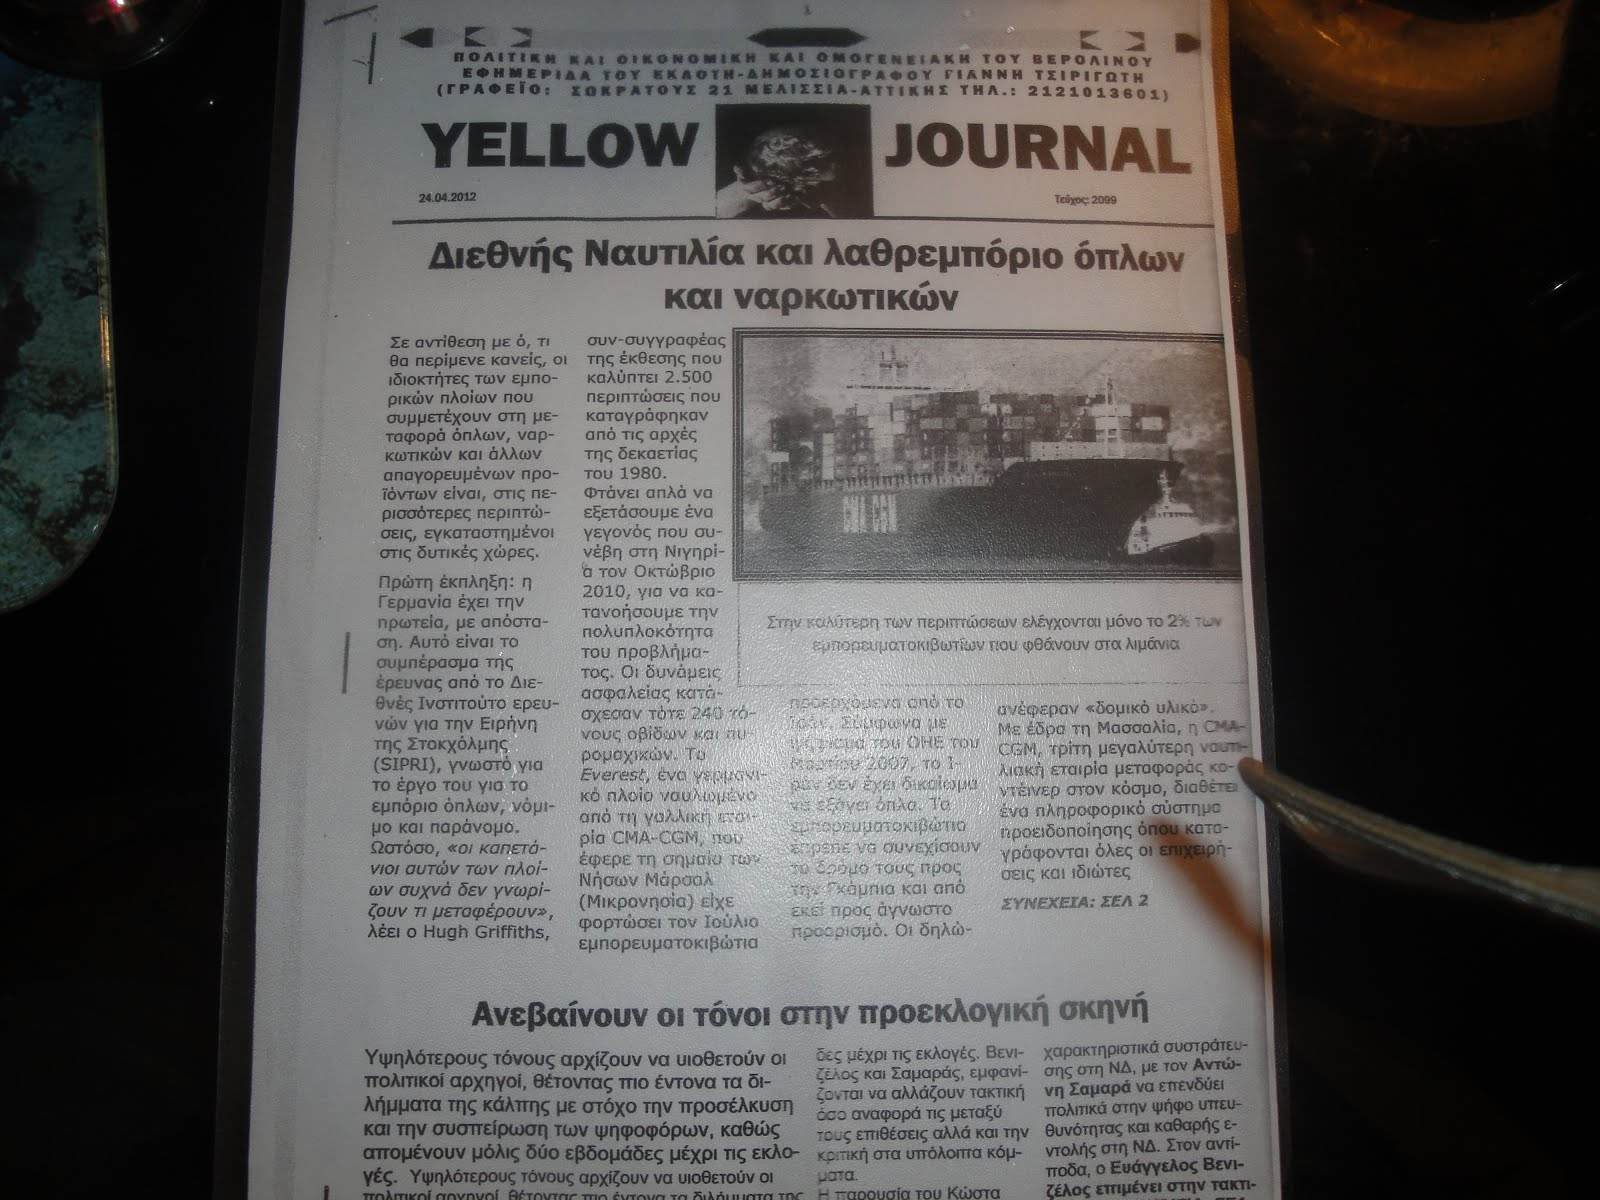 THE YELLOW JOURNAL IN BERLIN WITH THE GERMAN BERLIN CHANNEL (STEPHANIE PULS JOURNALIST)